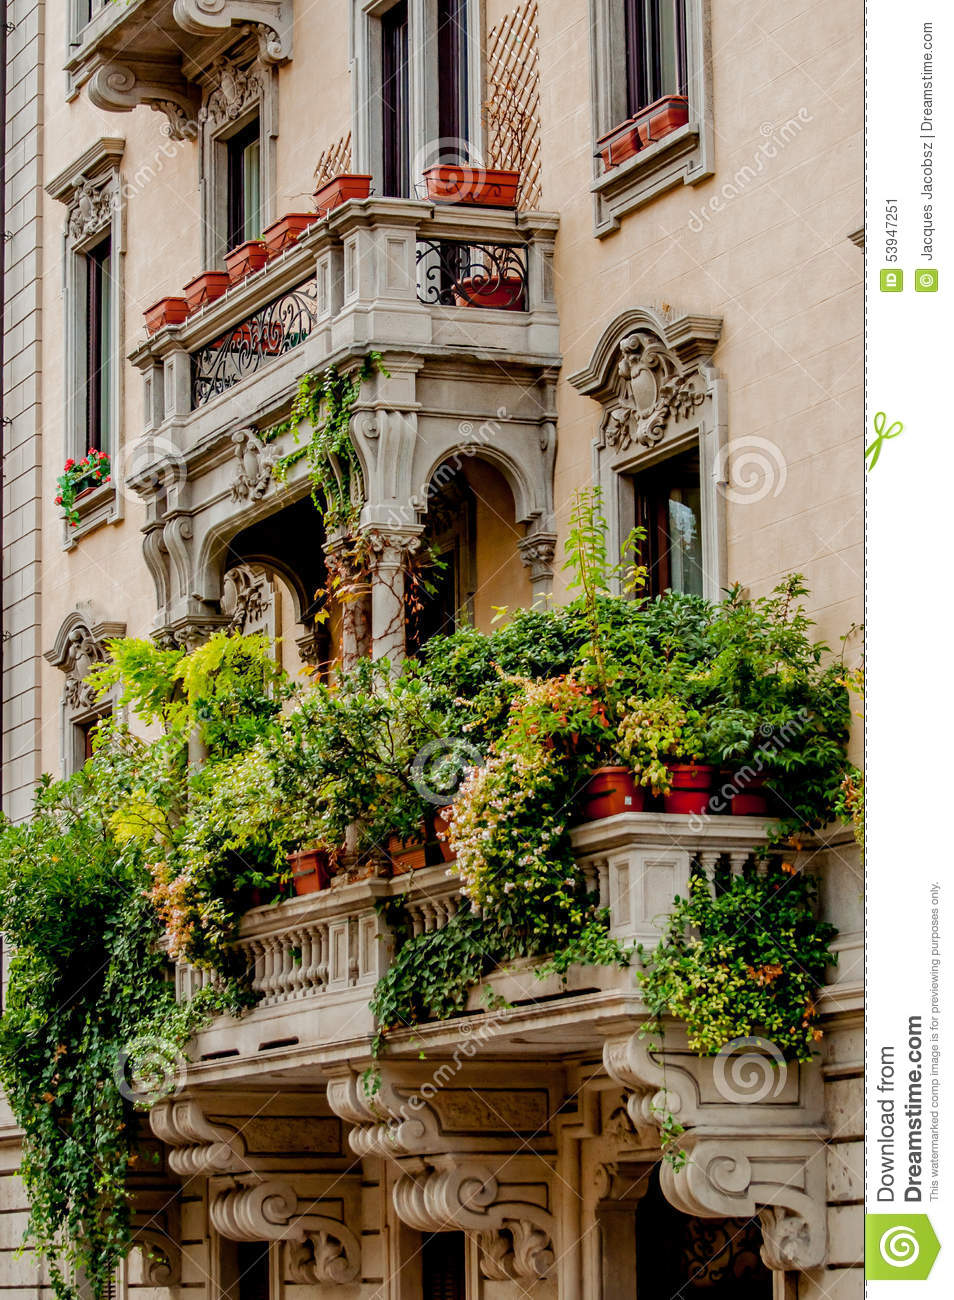 Balcony with jungle of plants stock image image 53947251 for Balcony jungle